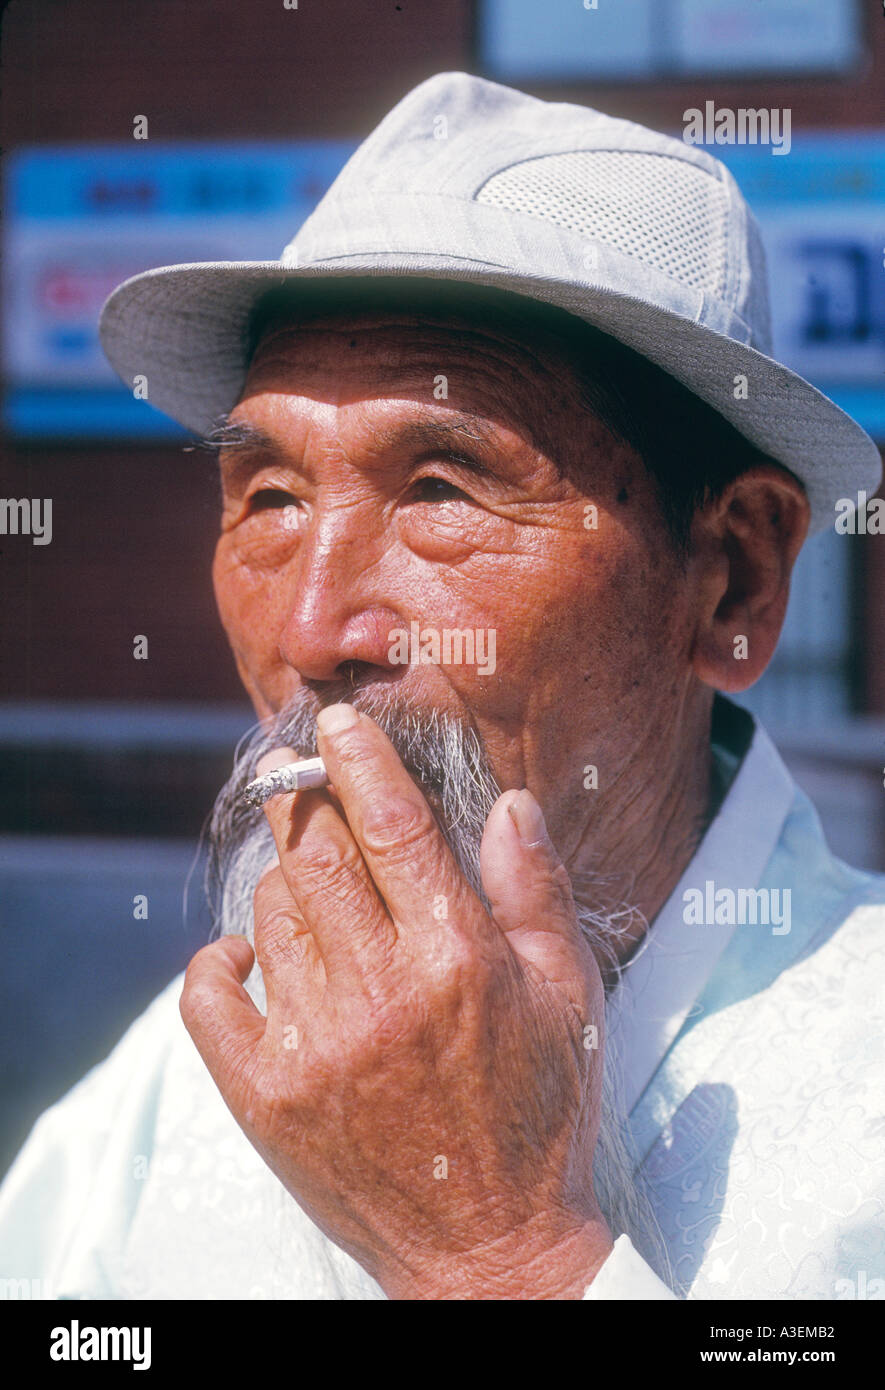 Chejudo cheju island south korea south korea asia asian oriental travel lifestyle destination holiday old man adult smoke smokin - Stock Image